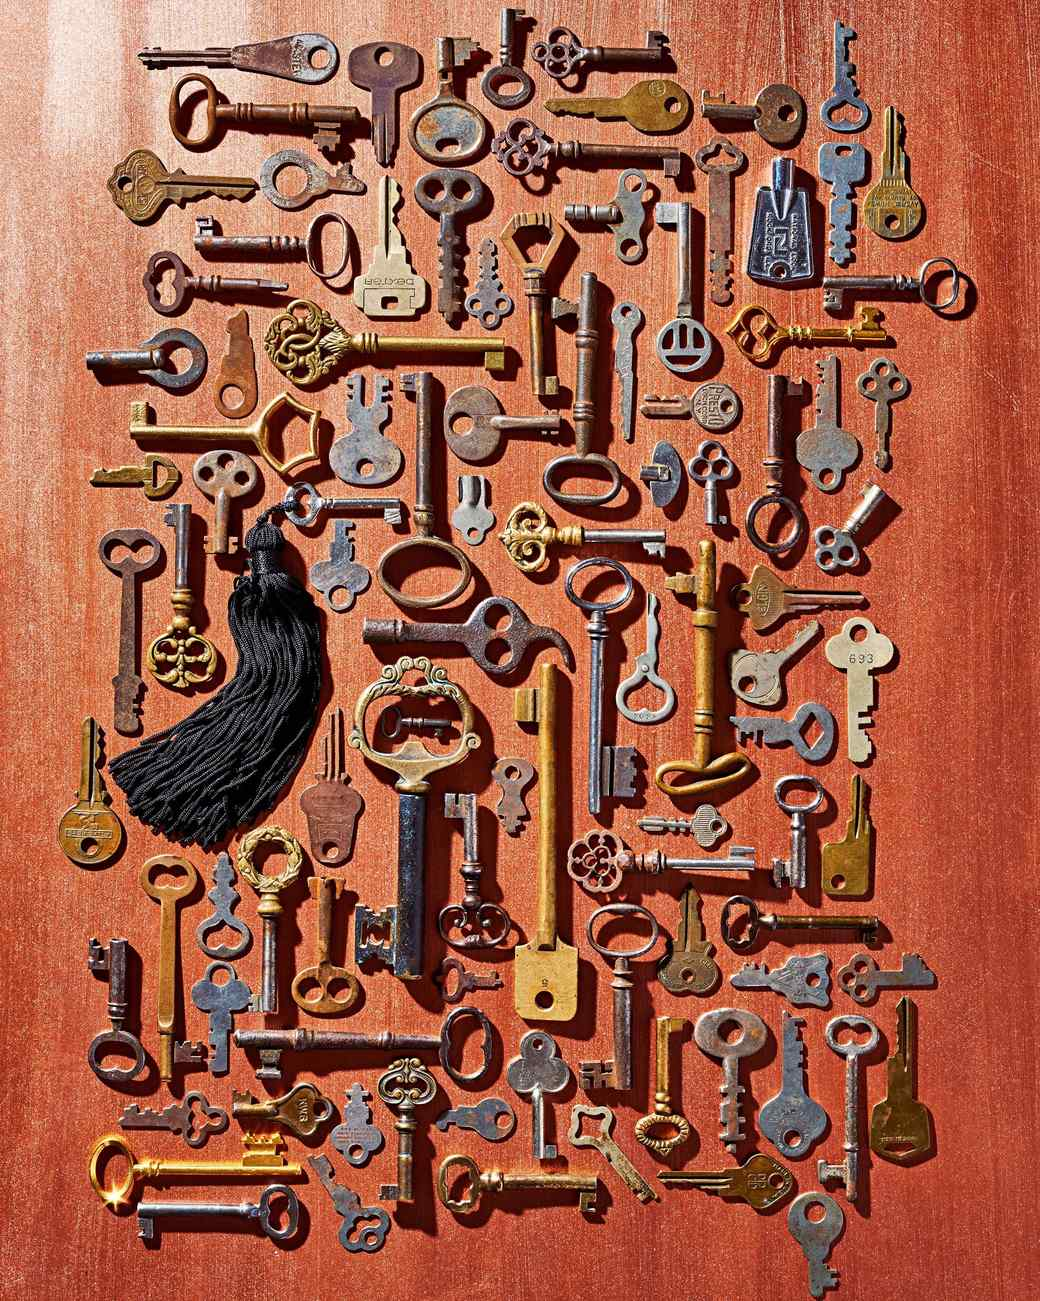 antique key collection